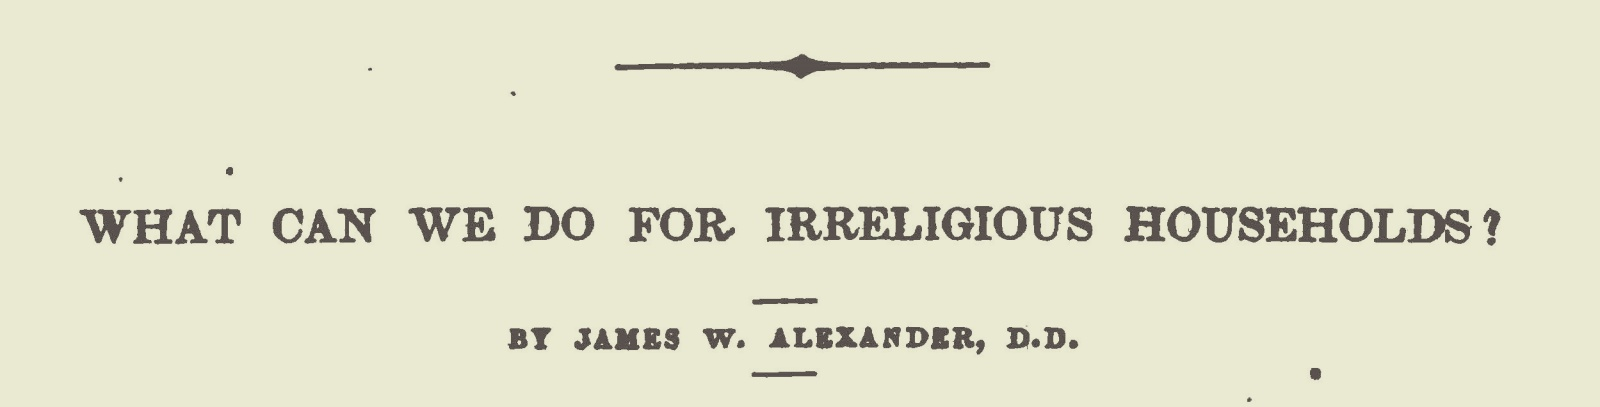 Alexander, James Waddel, What Can We Do For Irreligious Households Title Page.jpg